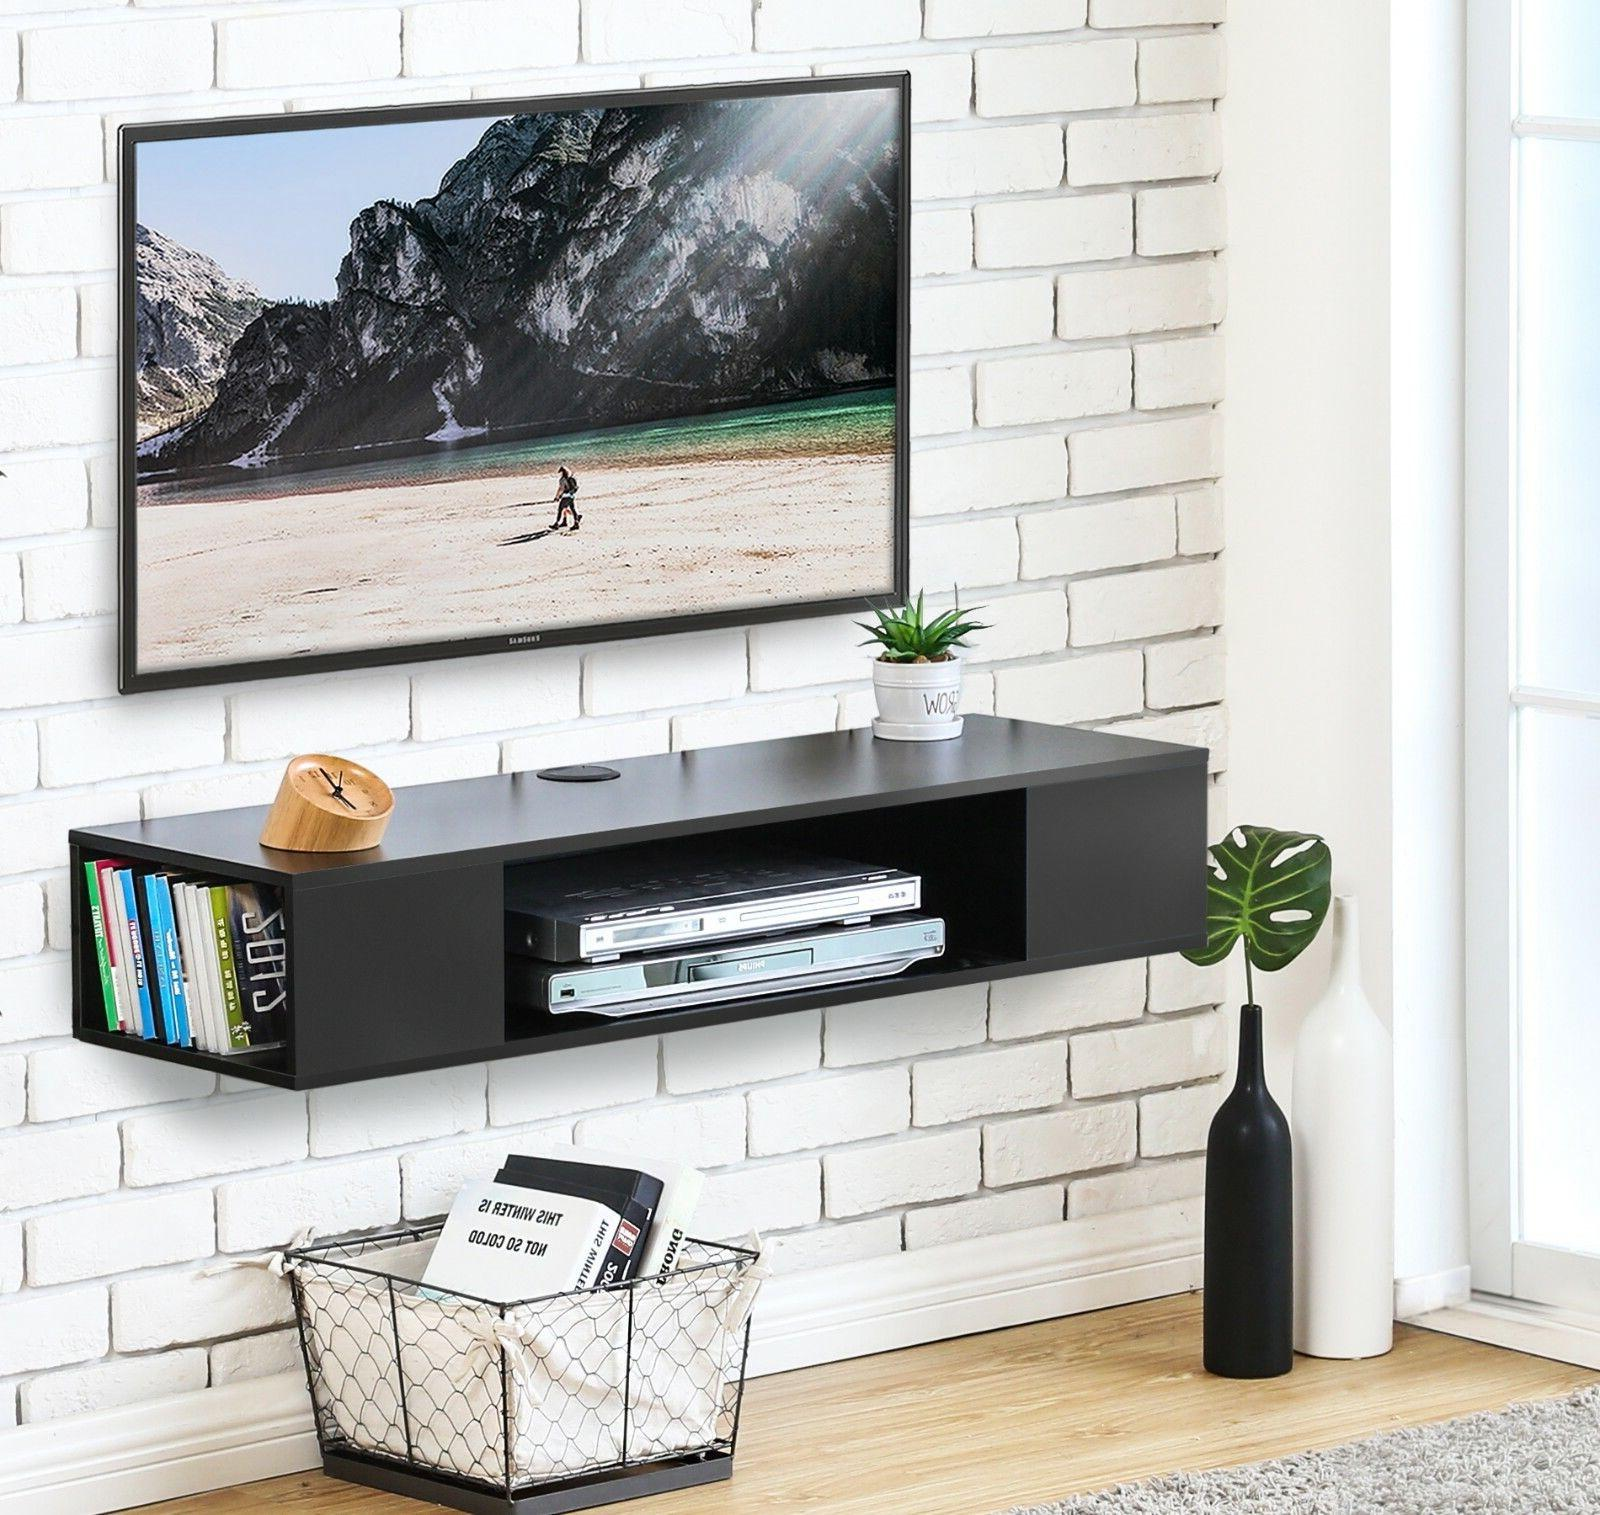 FITUEYES Wall Console,Floating TV Component